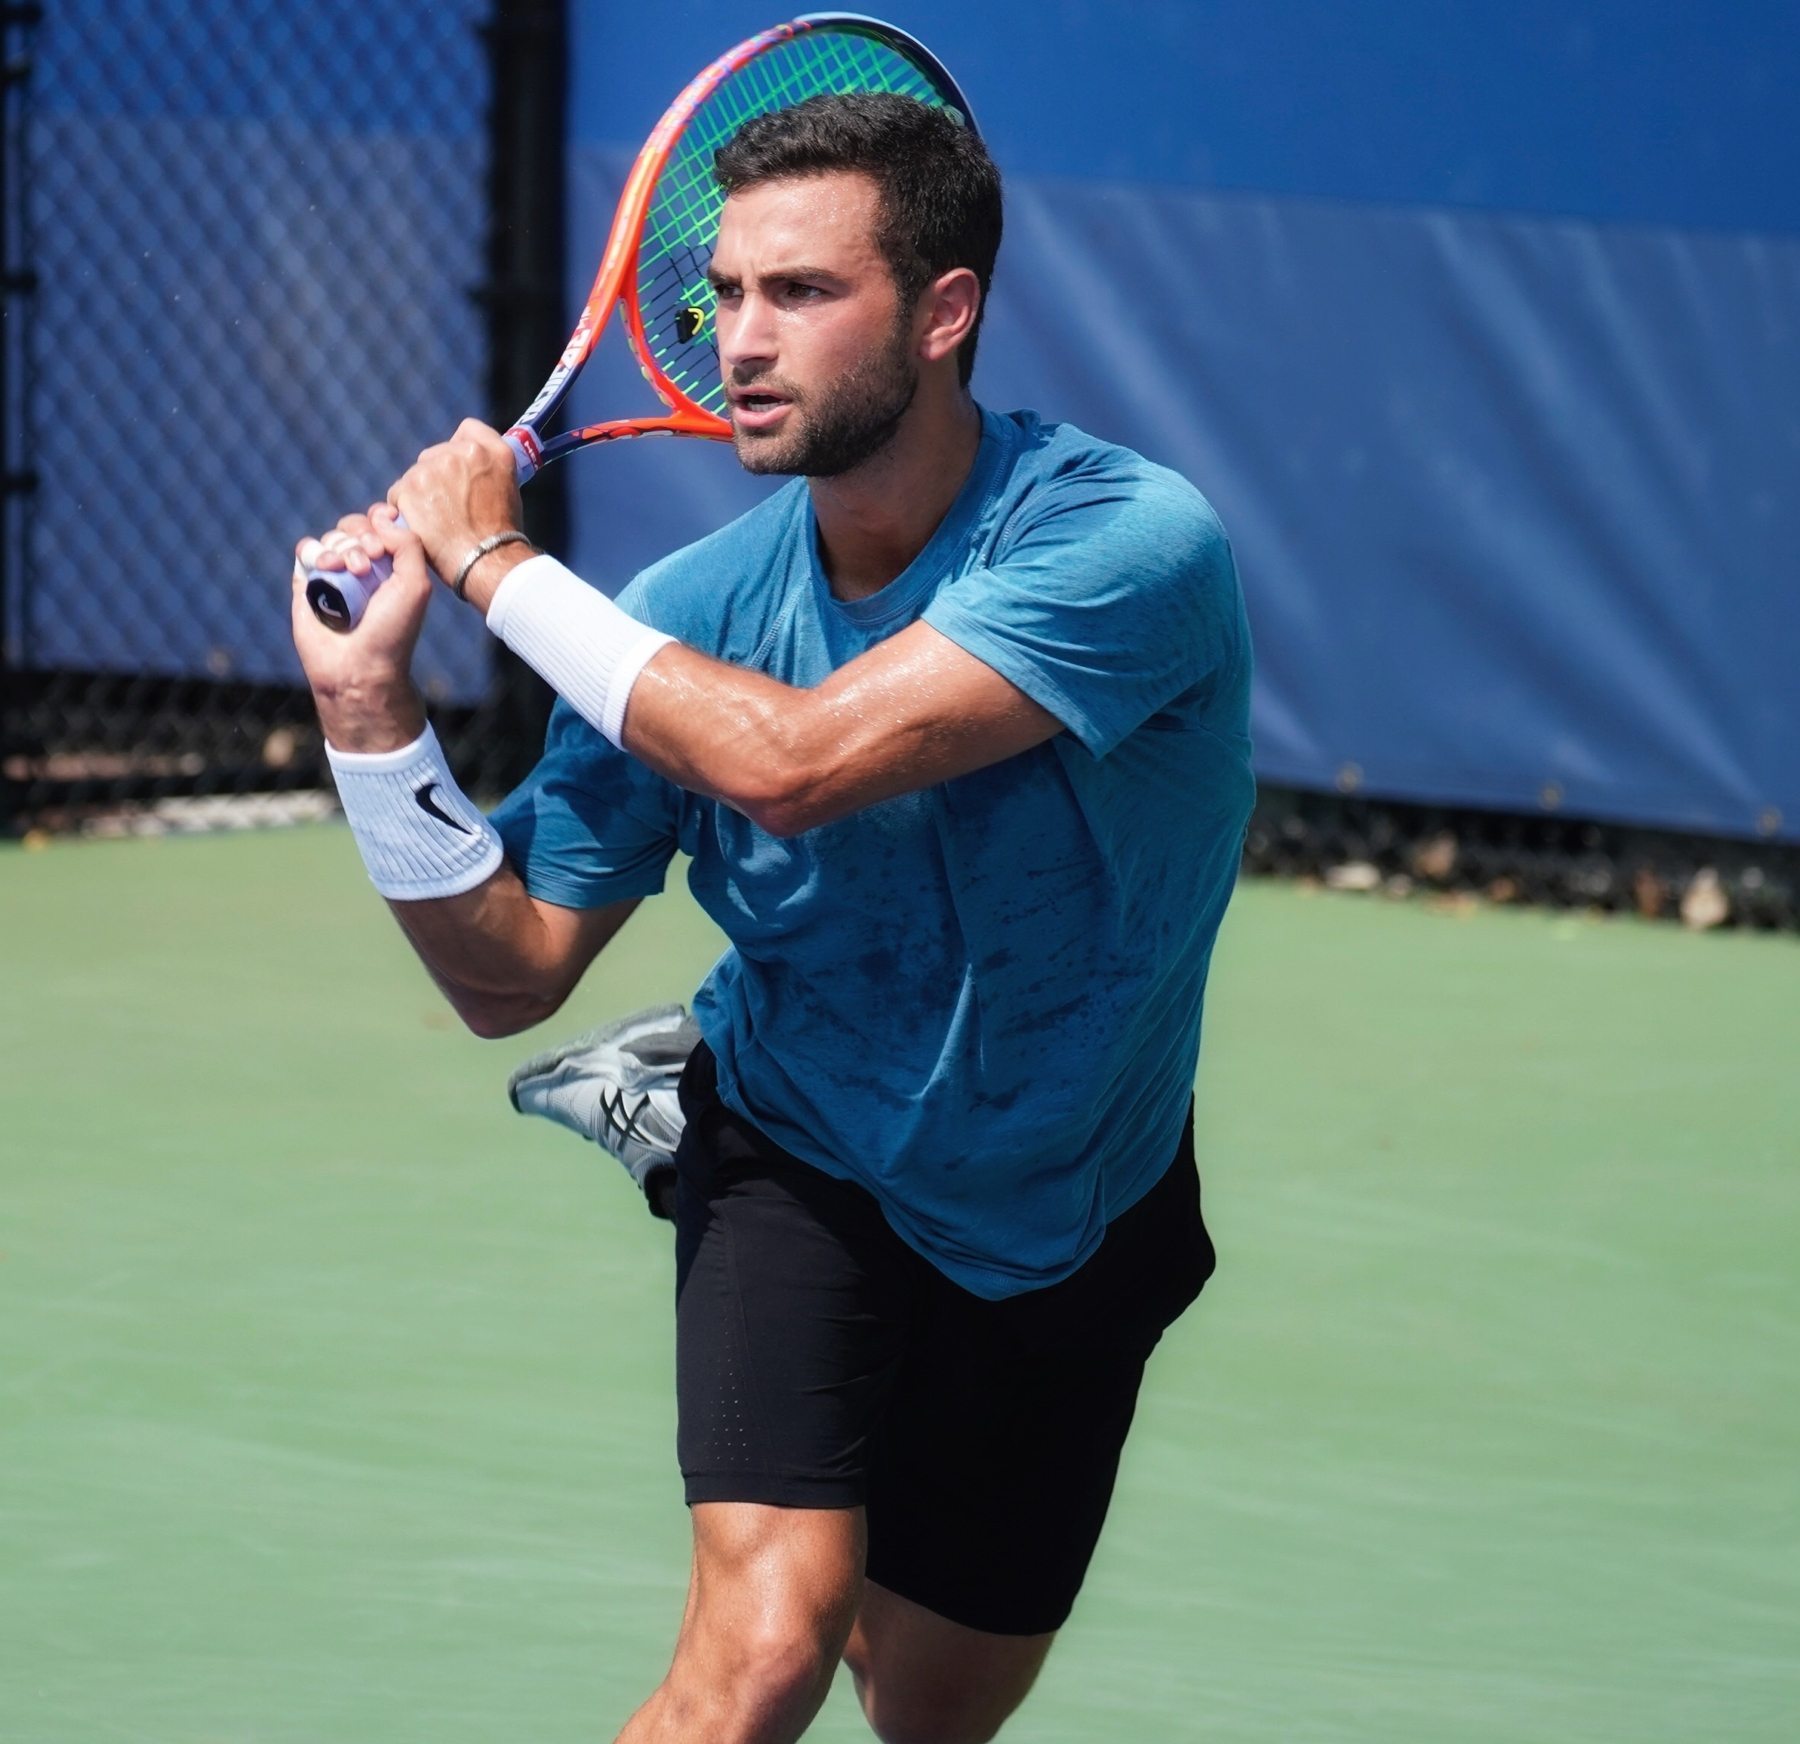 Noah Rubin, Professional Tennis Player